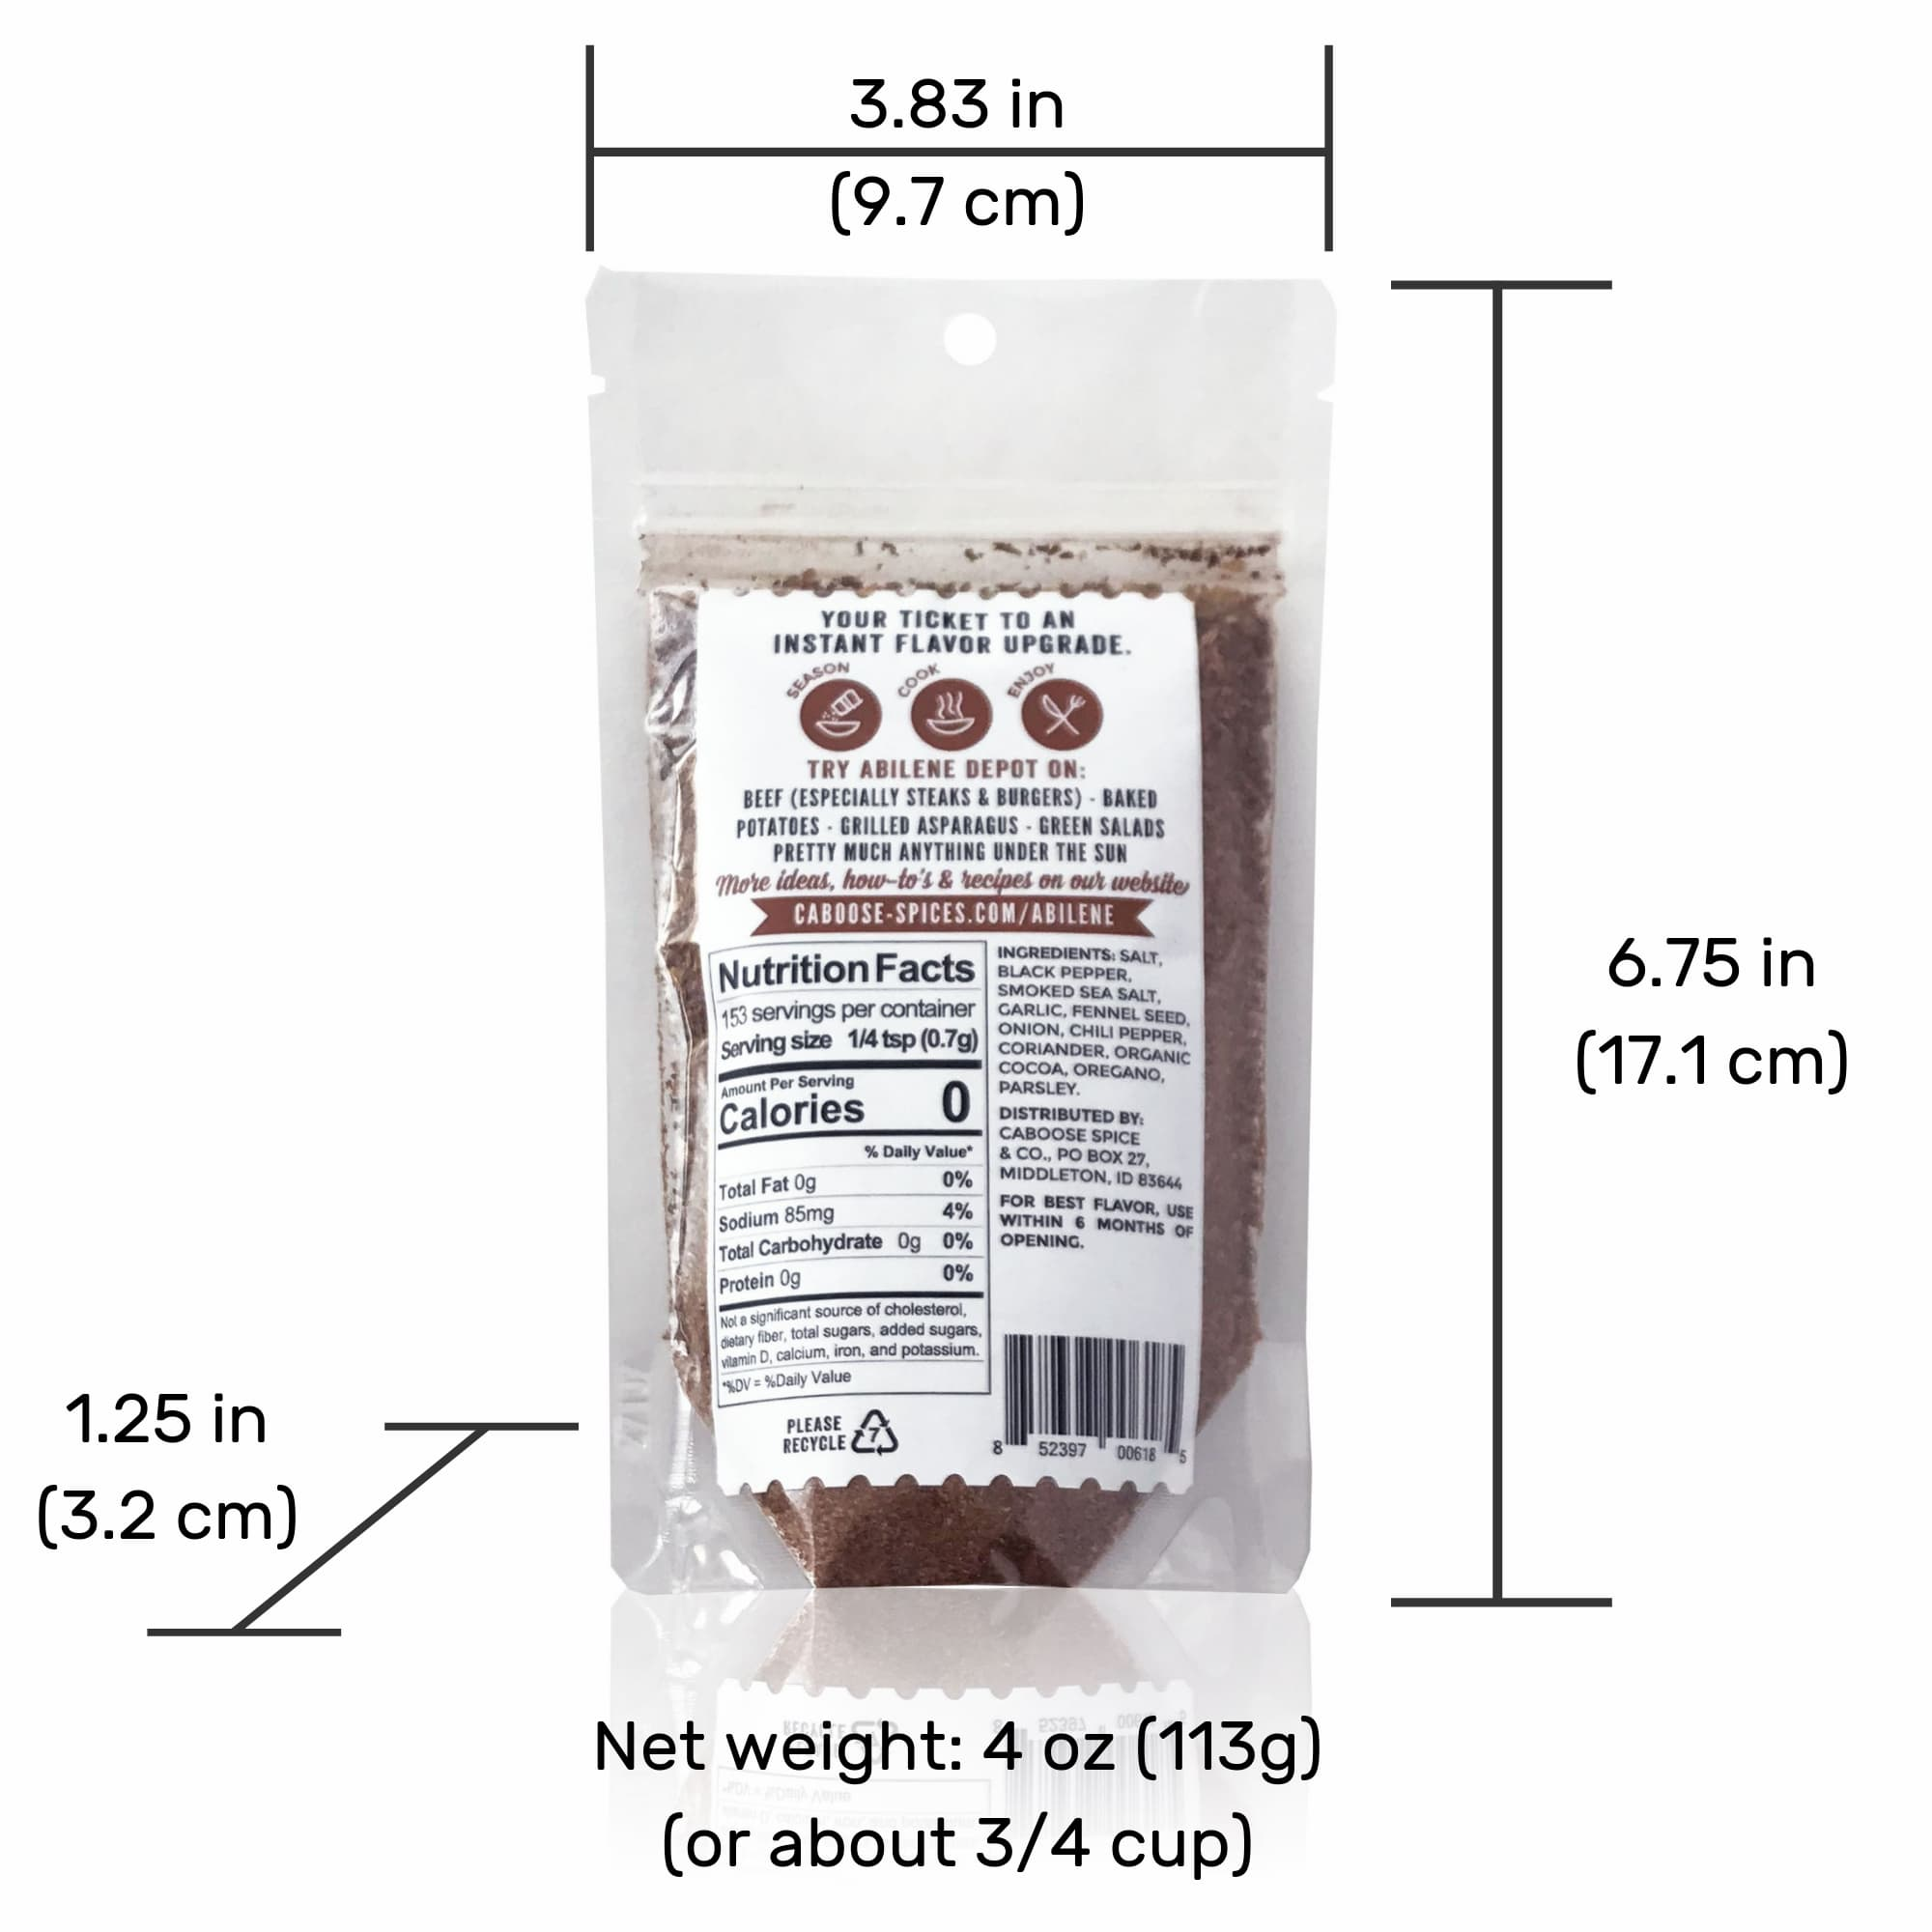 Abilene Depot 4 oz pouch back rear label nutrition facts ingredients barcode dimensions.jpg